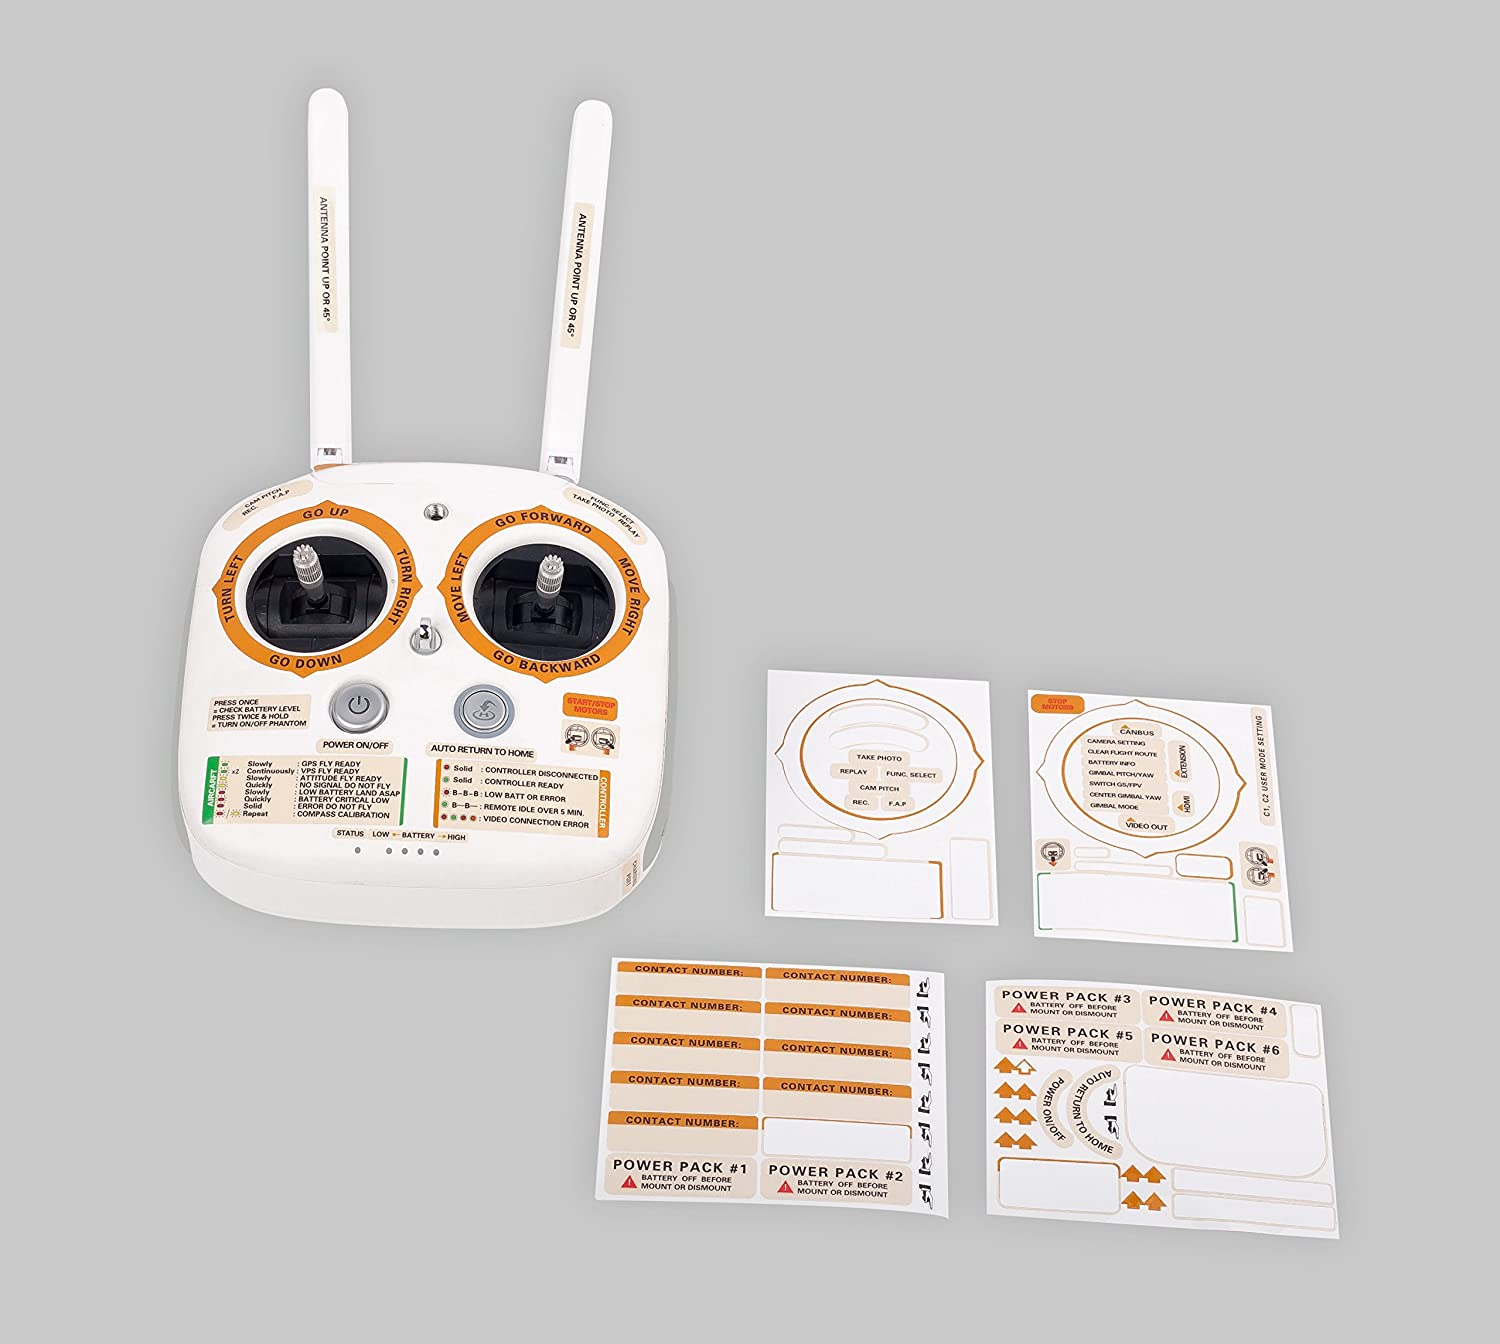 SummitLink Sticker/Set/ID/Marking/Decal/for/DJI/Phantom/3/Professional/and/Advanced/Multifunction Yellow